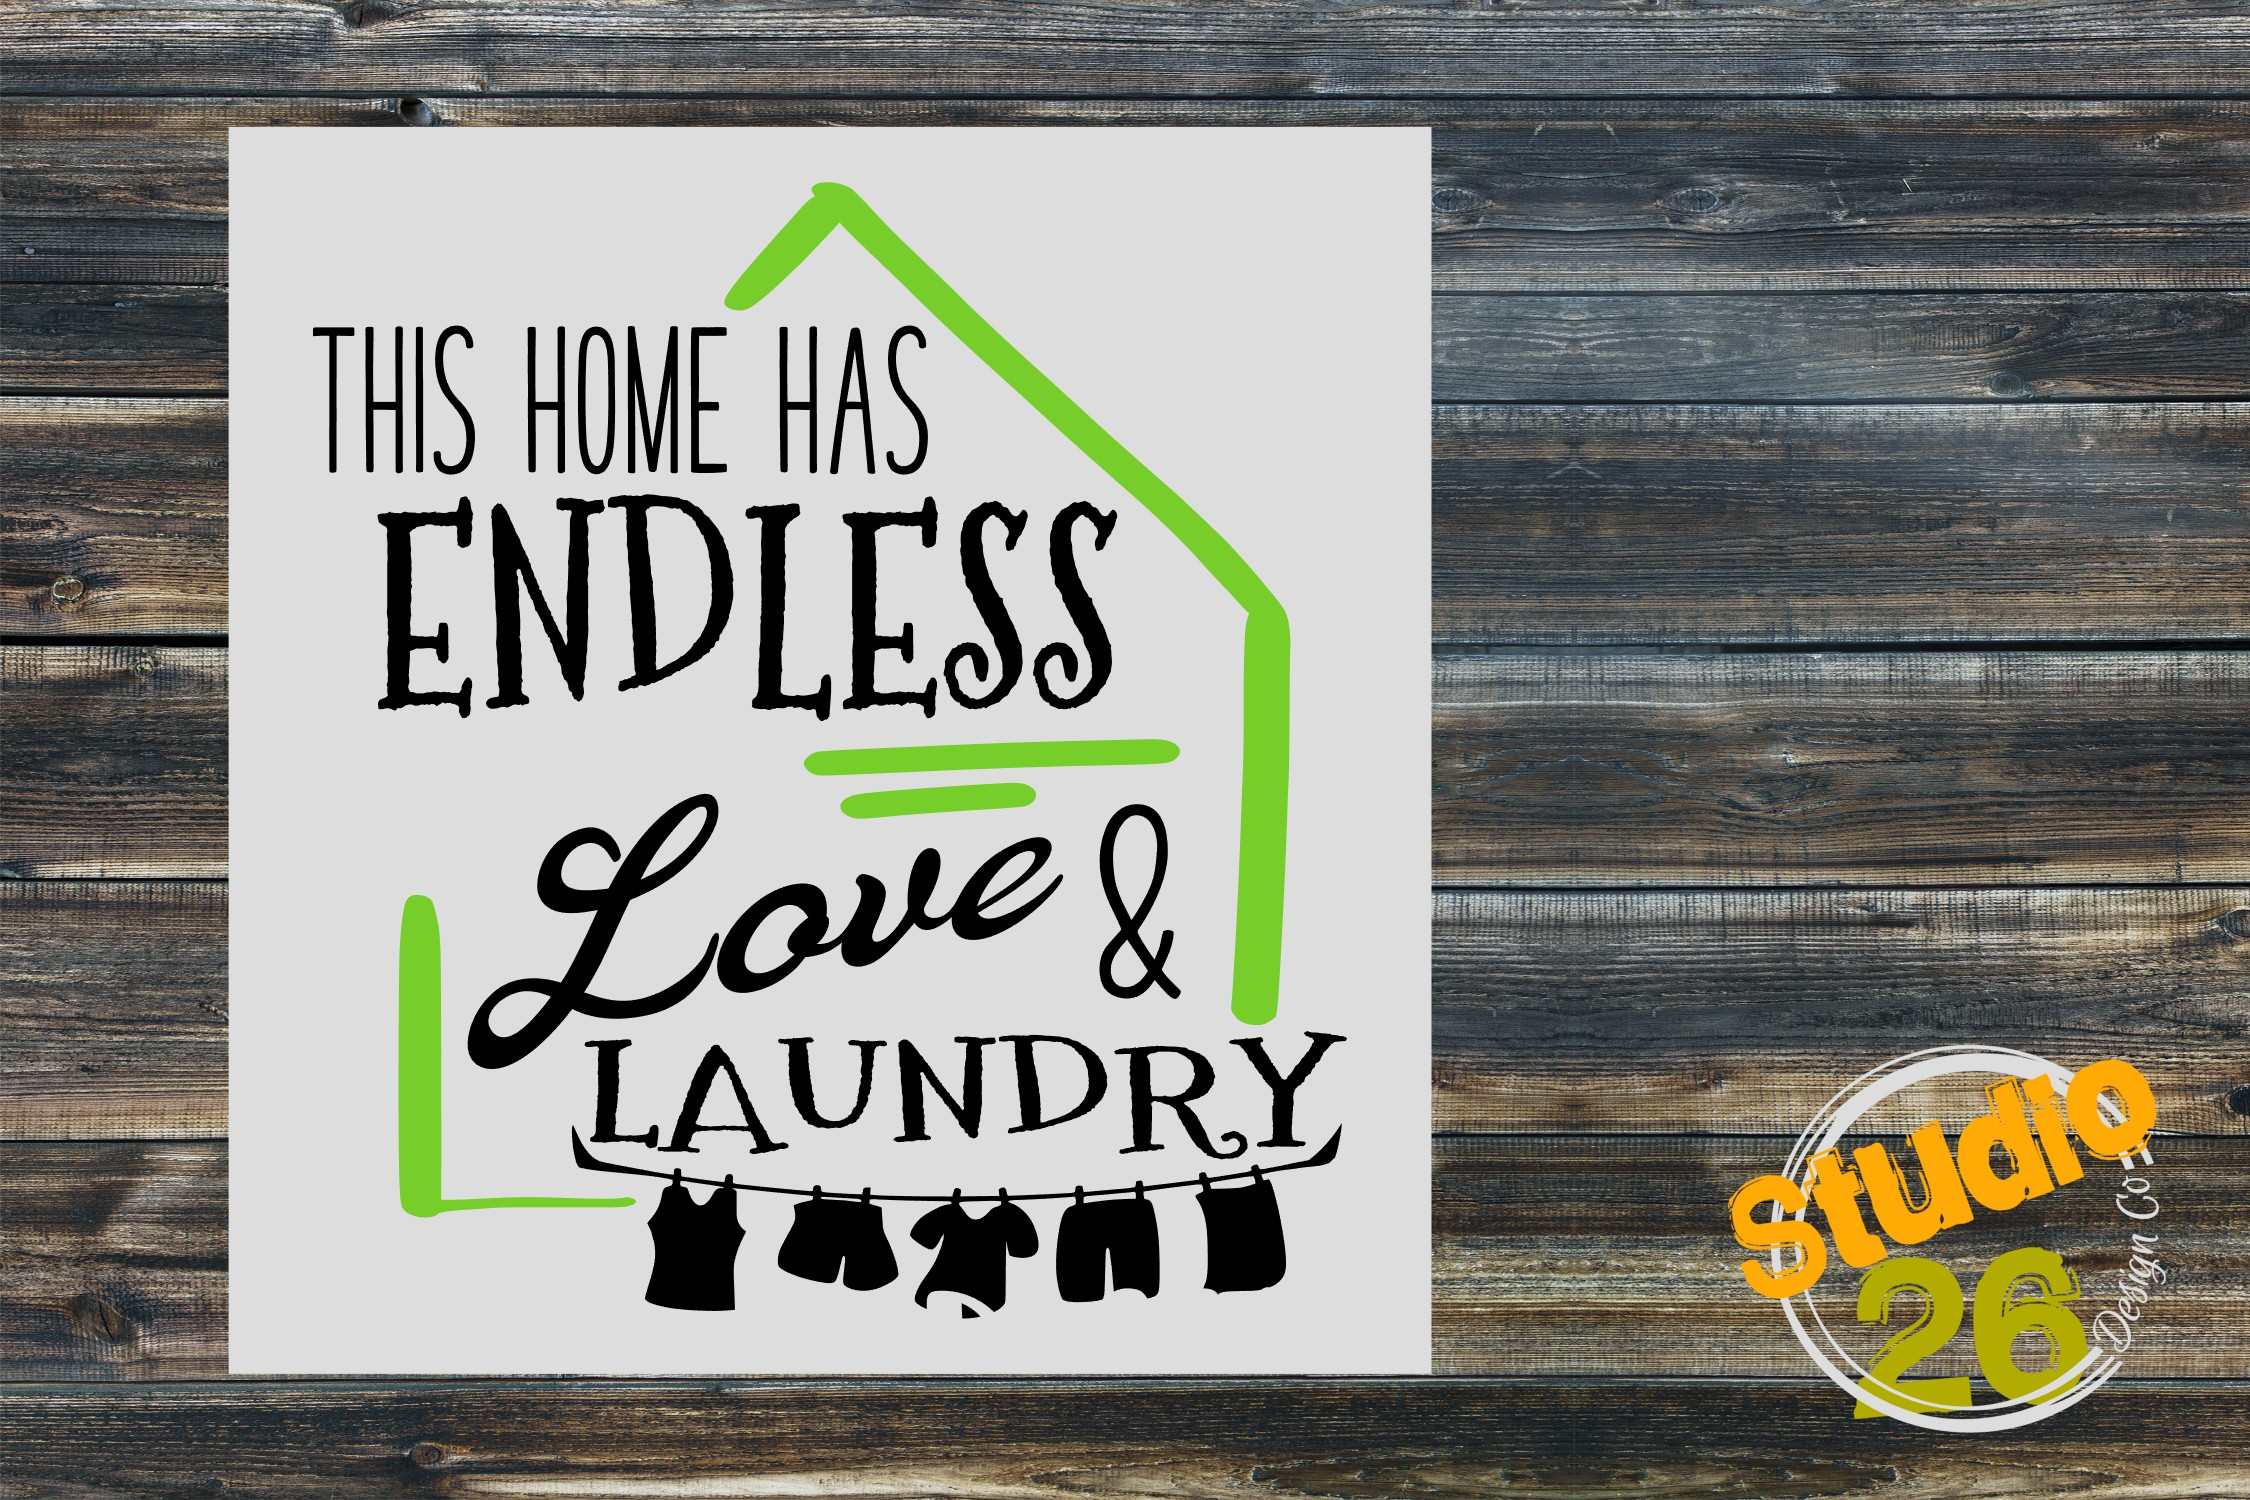 This Home Has Endless Love Laundry Svg Graphic By Studio 26